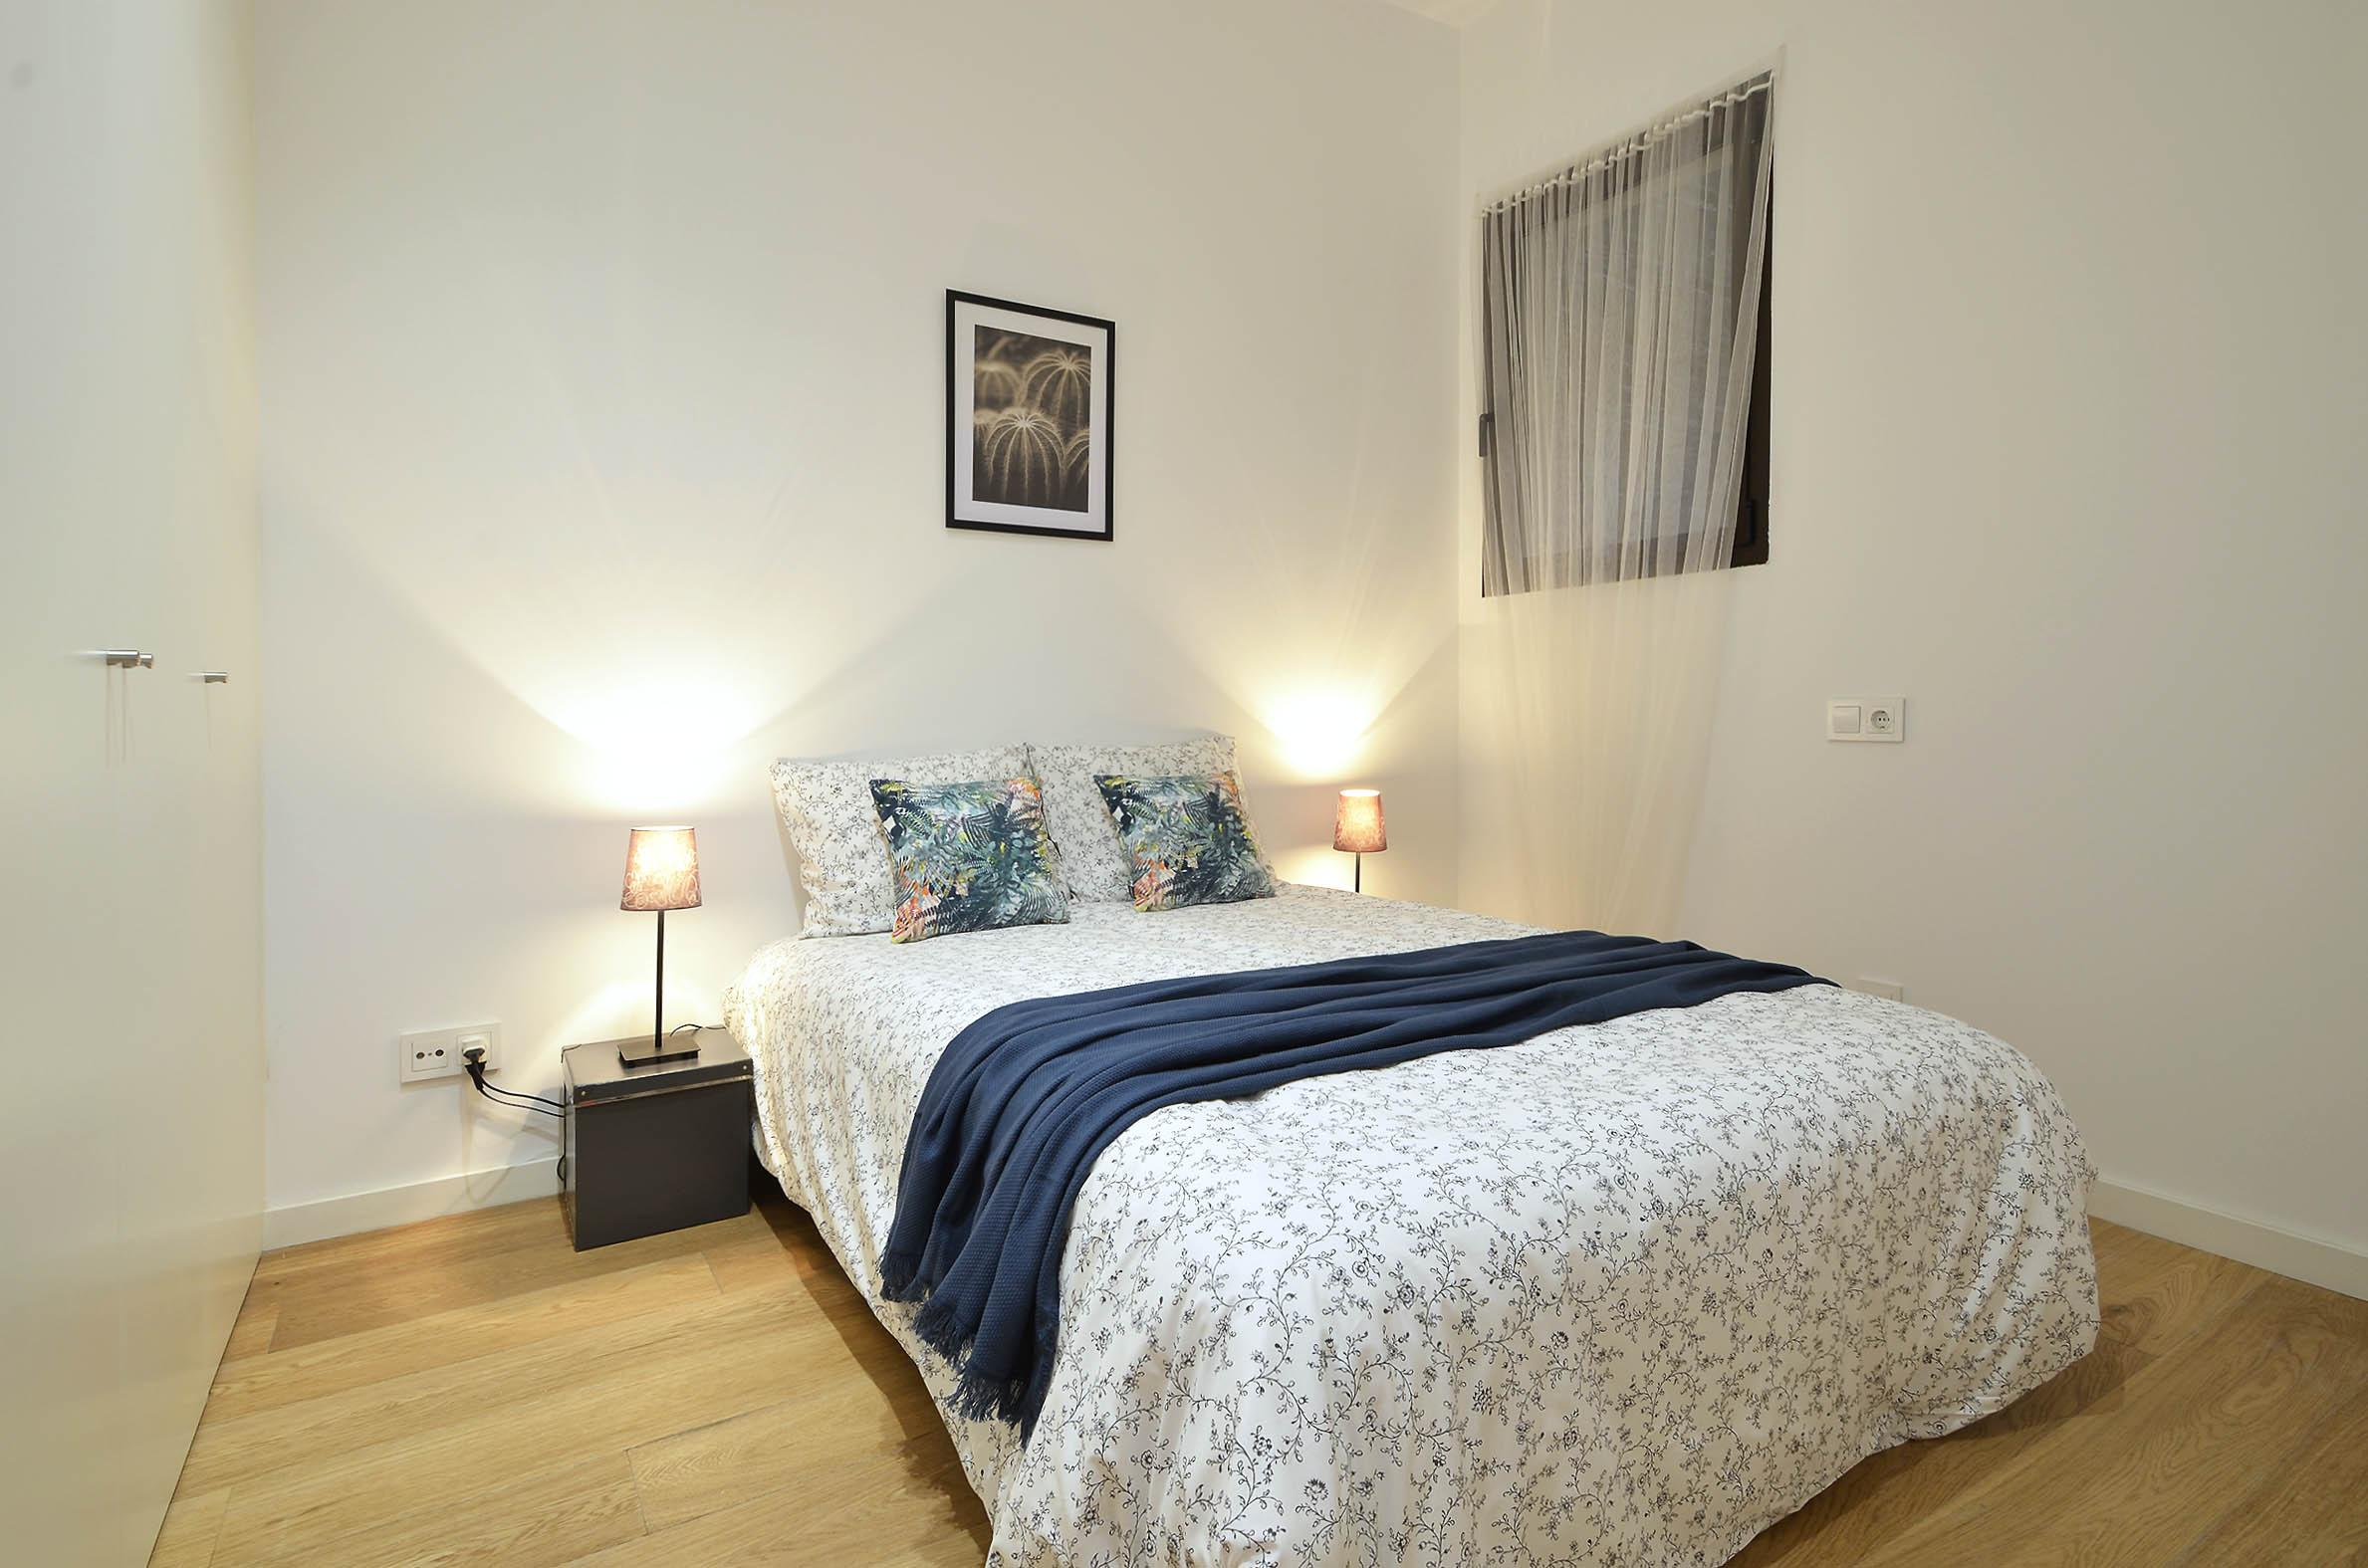 173872 Apartment for sale in Eixample, Old Left Eixample 15